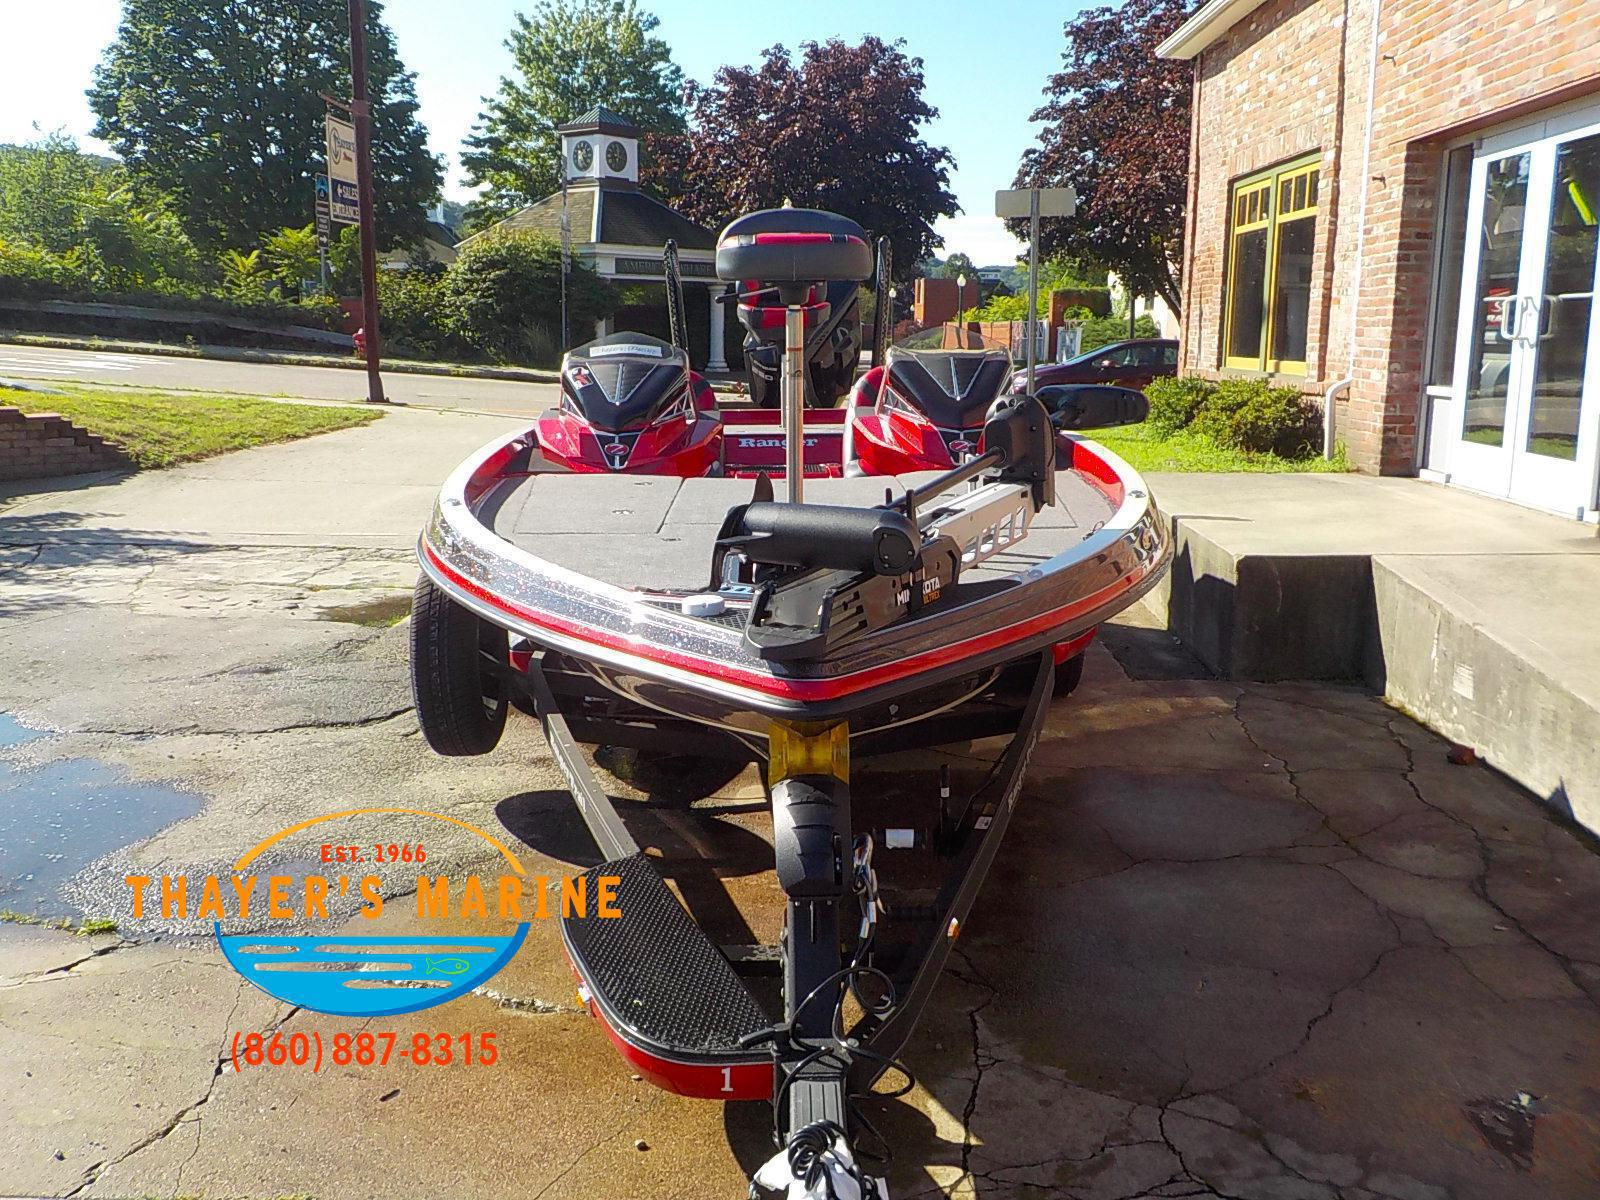 2020 Ranger Z520L for sale in Norwich, CT  Thayer's Marine